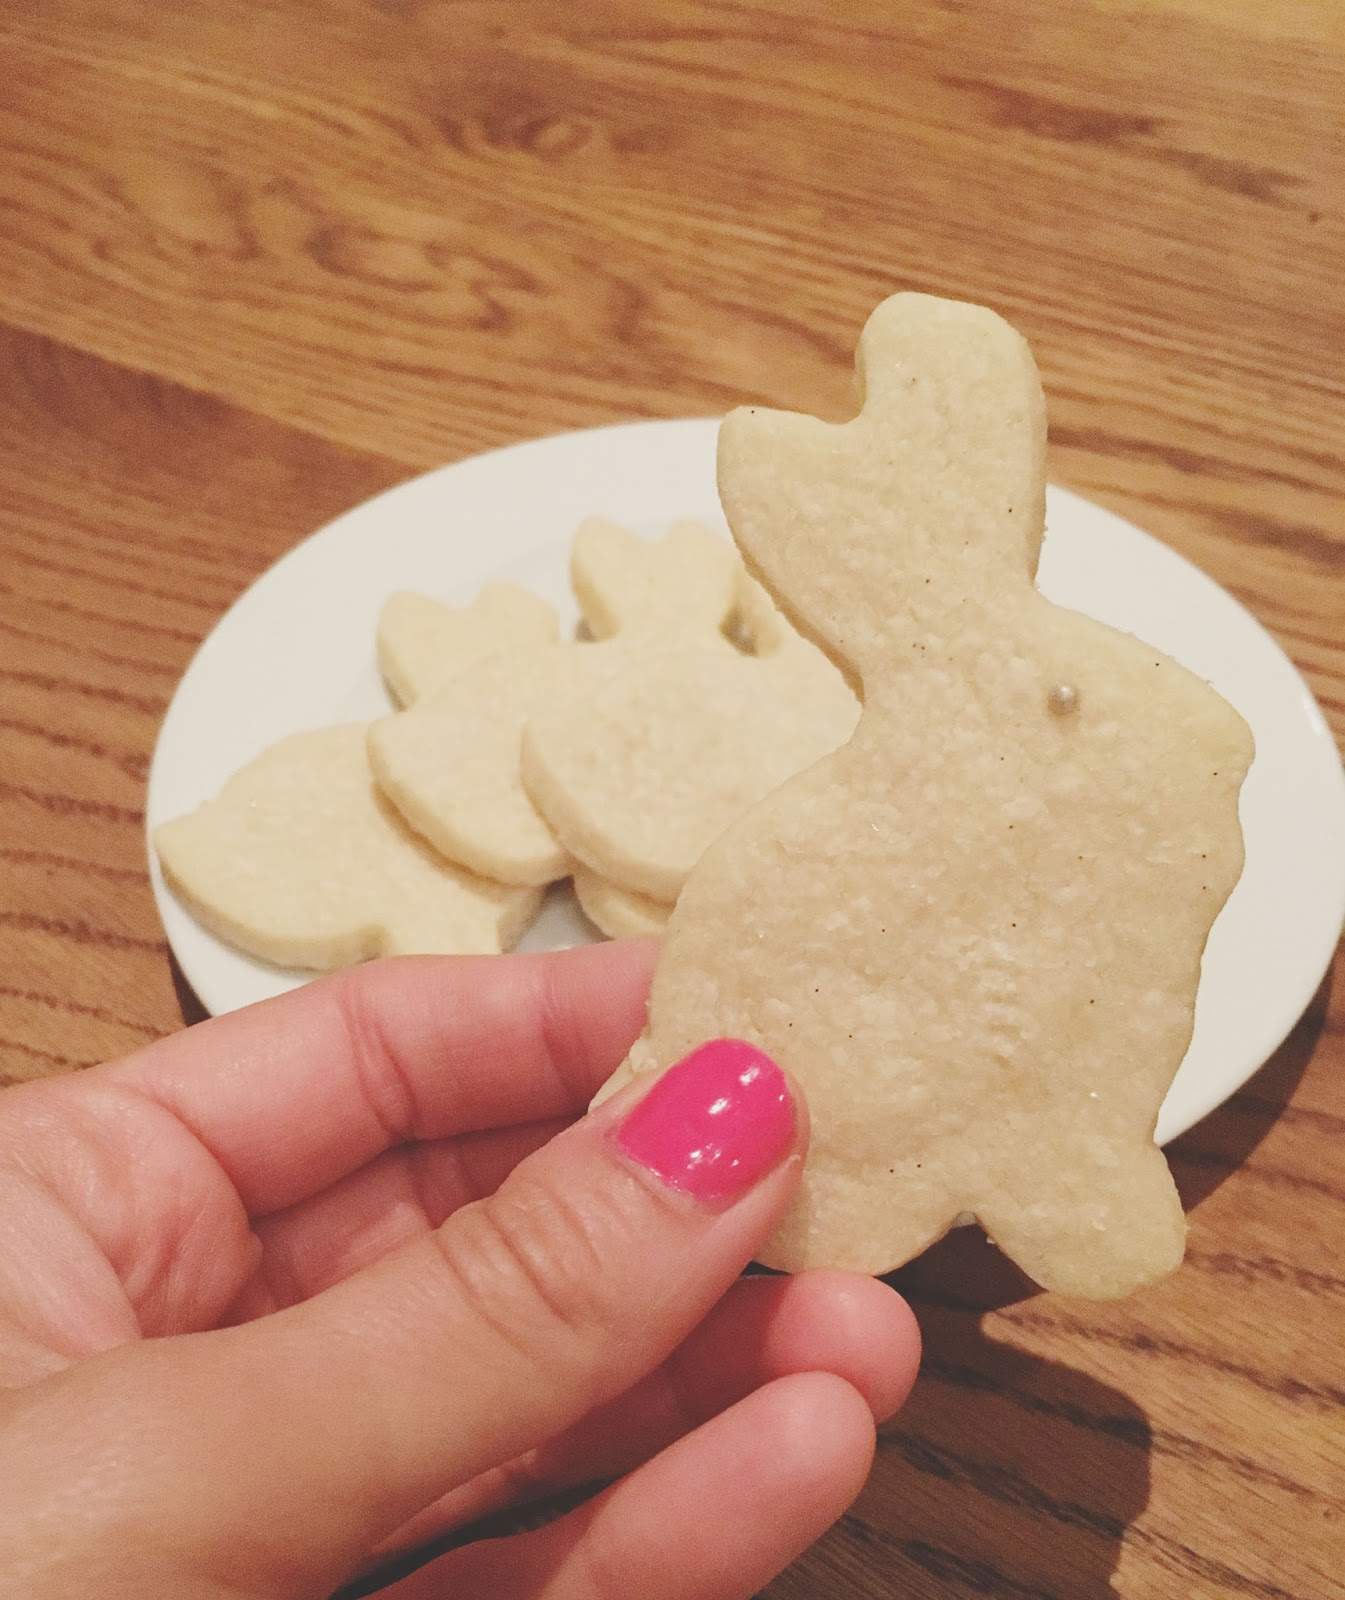 shortbread cookies at Hunky Dory - A restaurant in Houston, Texas